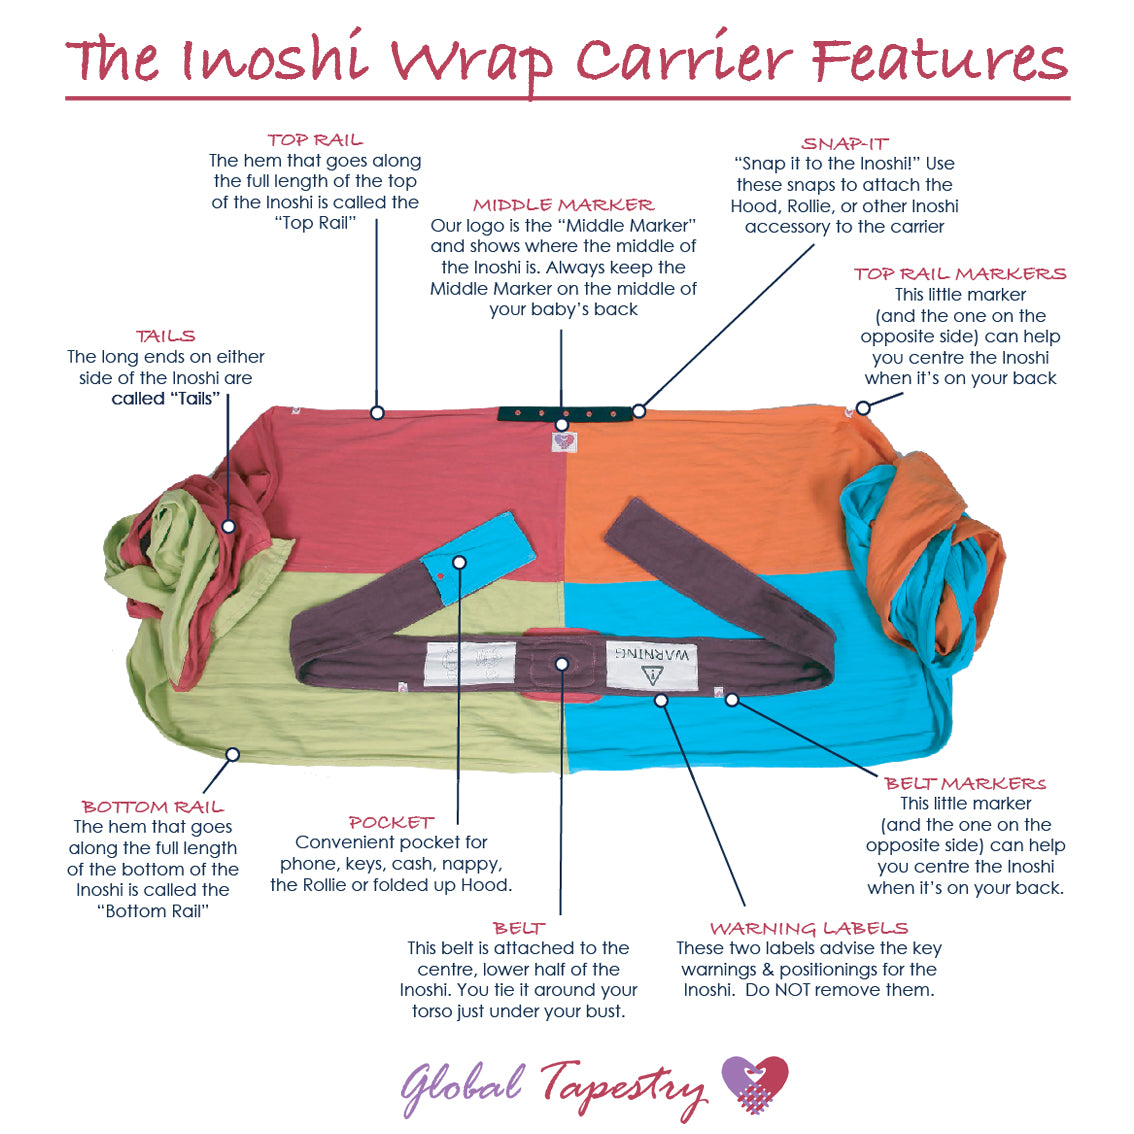 Global Tapestry - Inoshi Baby Carrier Features